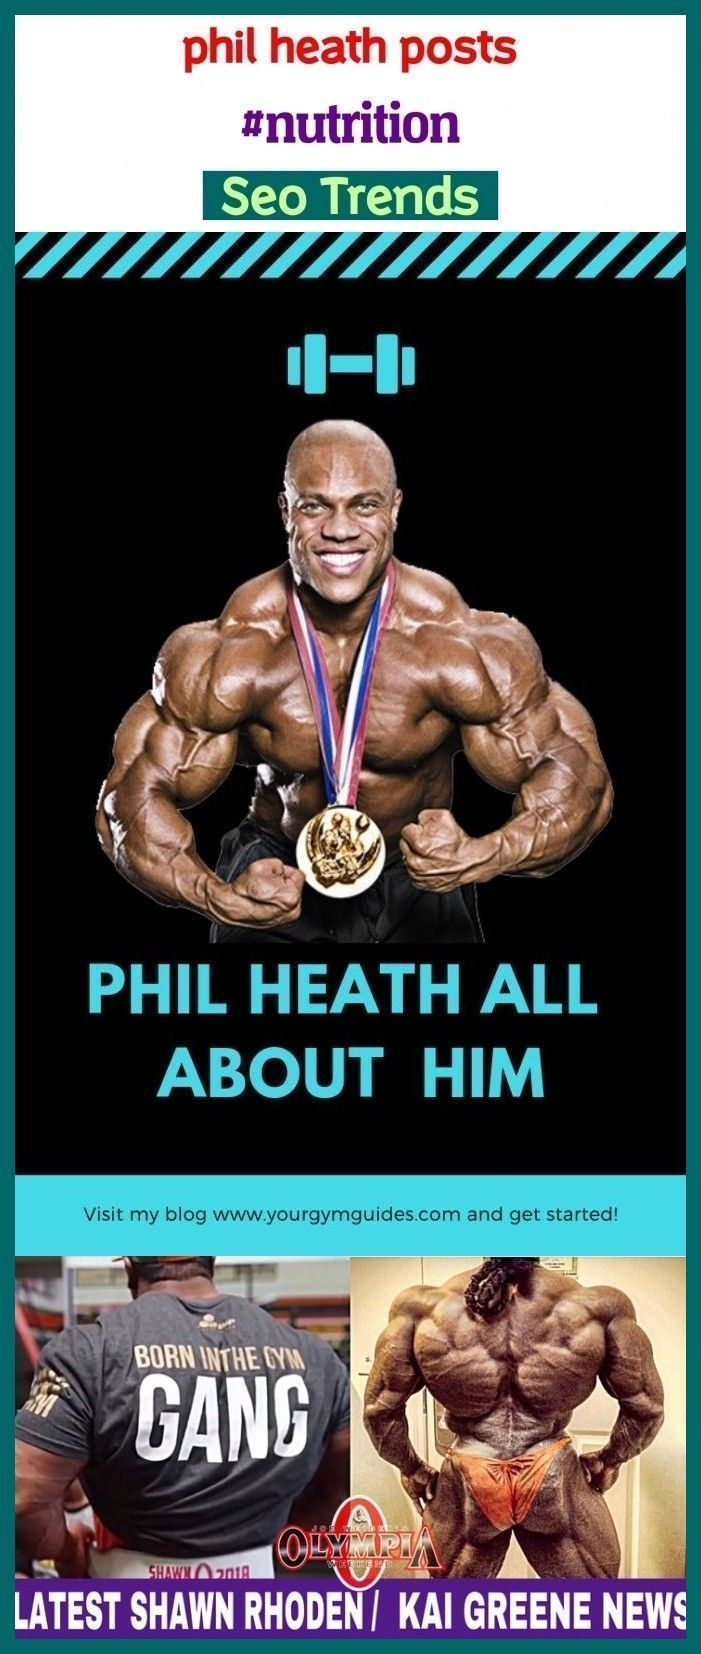 Phil Heath 2020 Fitness In 2020 Phil Heath Phil Heath Bodybuilding Phil Heath Quotes